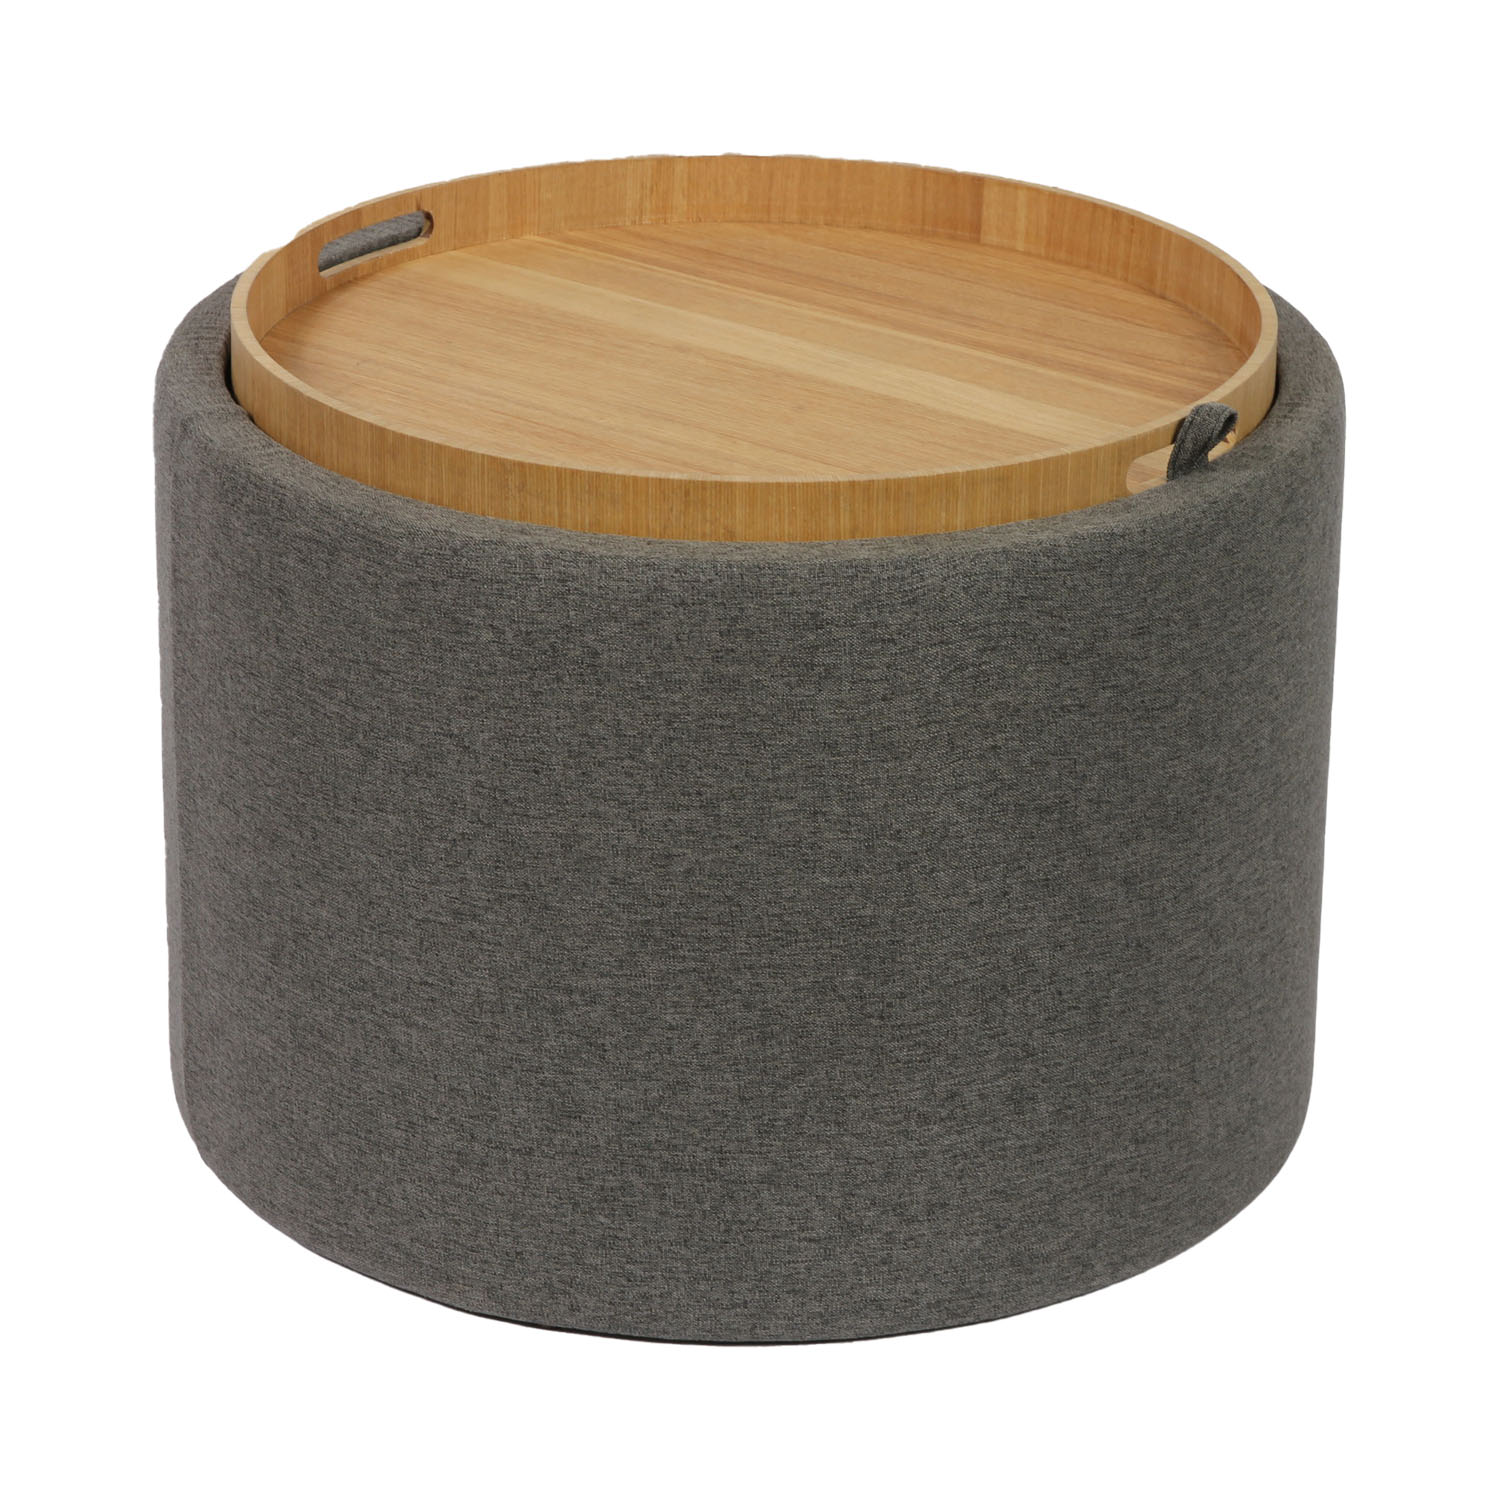 Gallery Side Table with Wooden Tray